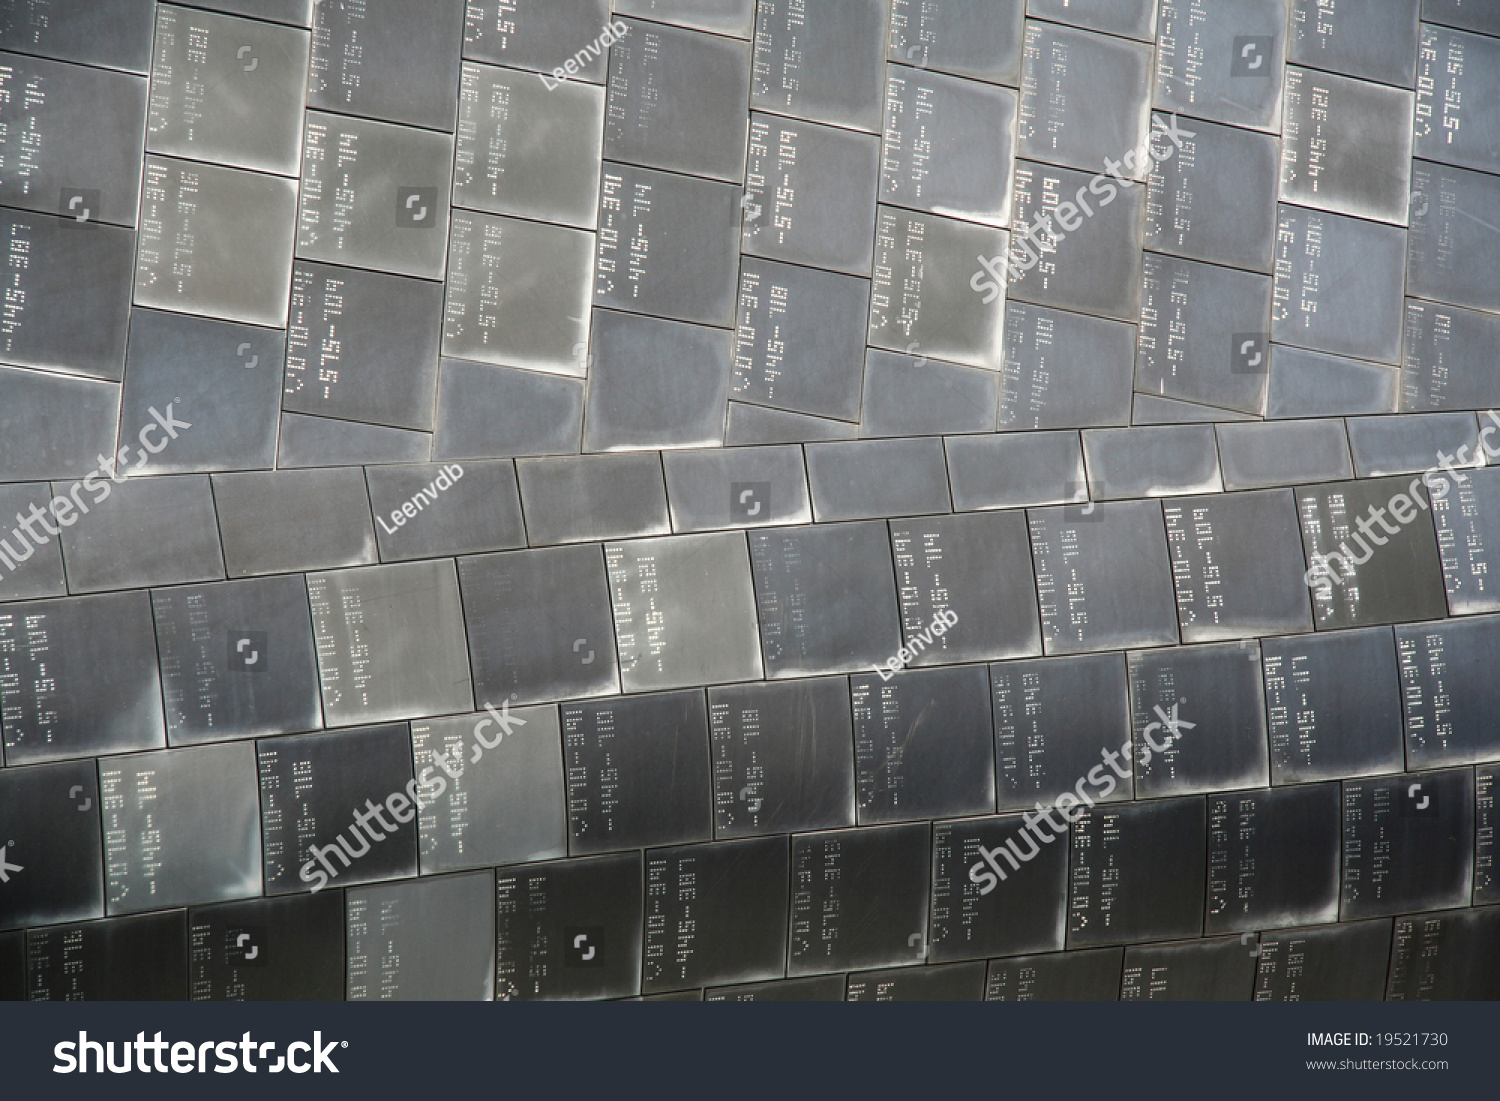 Images Of Space Shuttle Nose Heat Tiles Spacehero